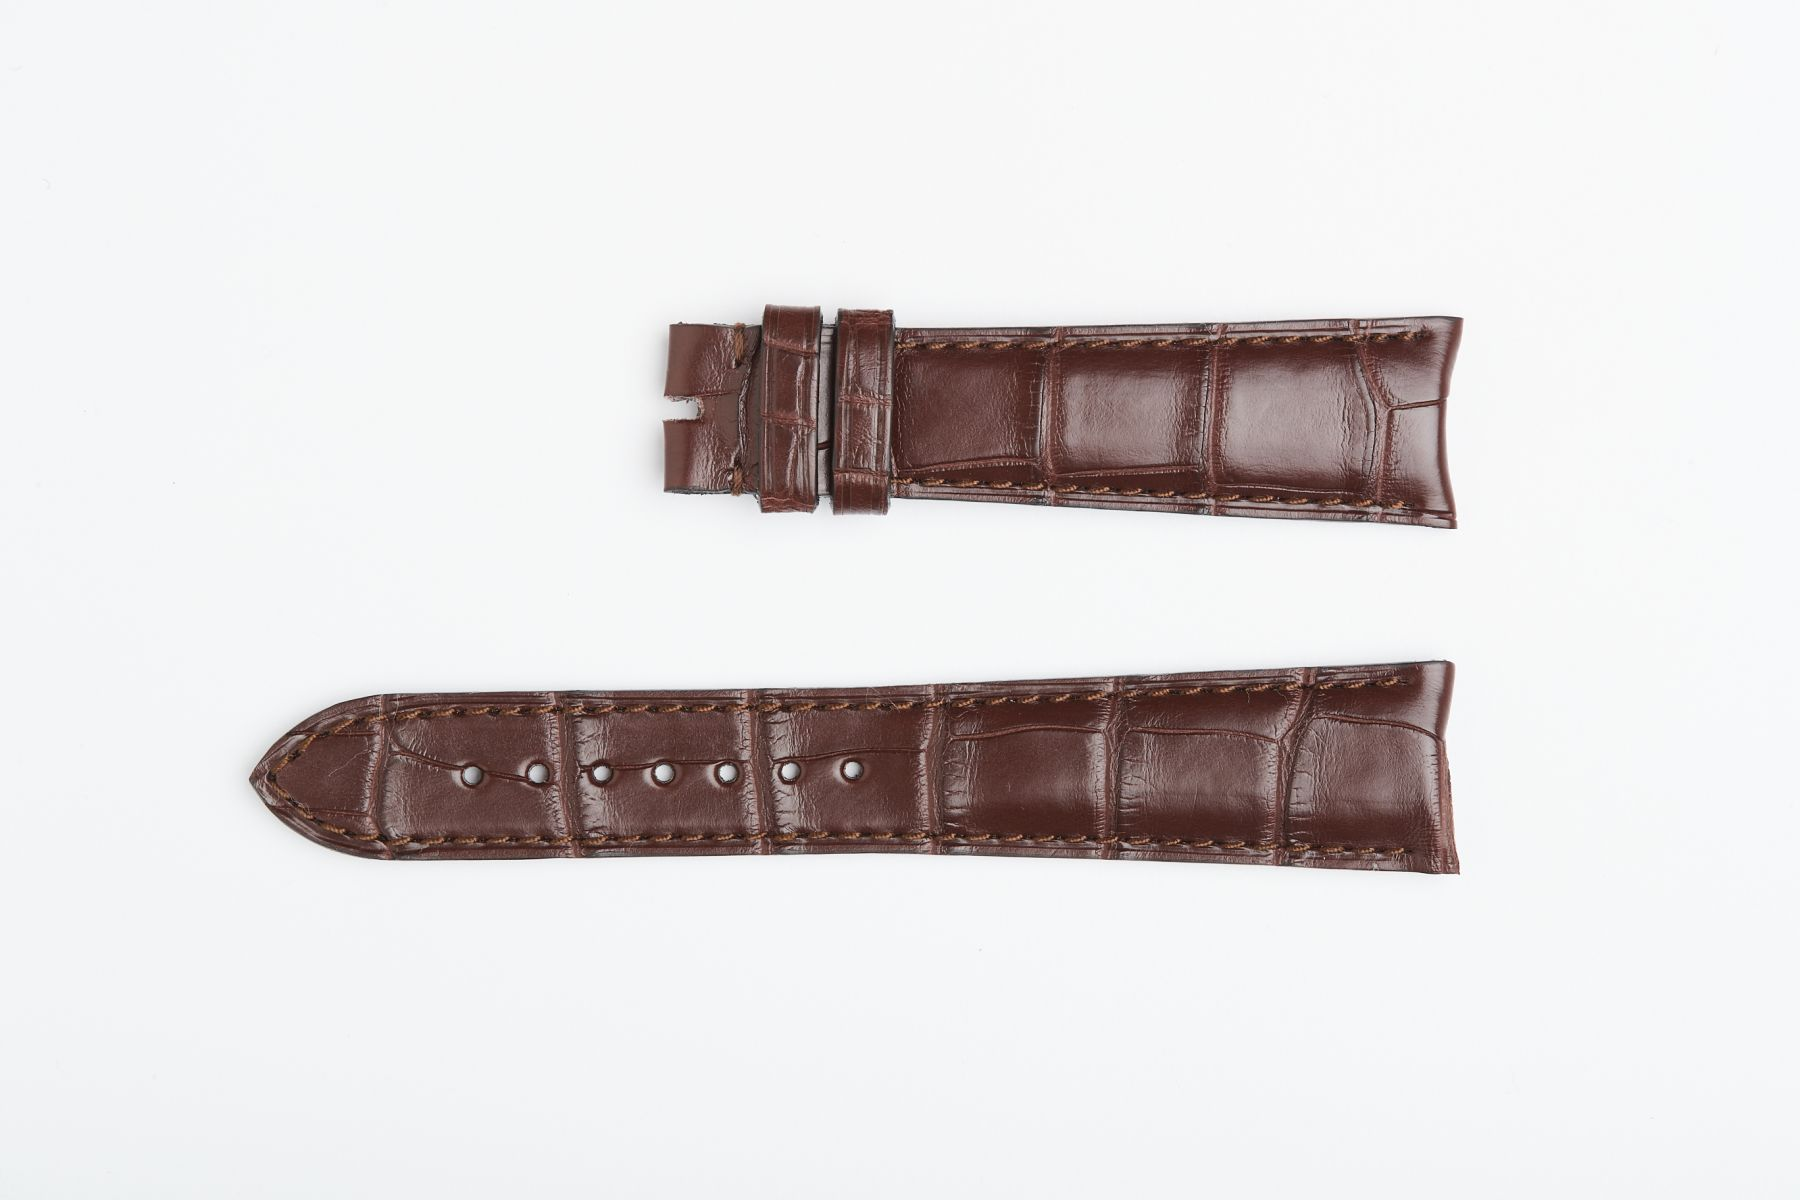 Rolex Cellini Dual / Time / Date Custom made strap in Chocolate Brown Matte Alligator leather. Curved lugs